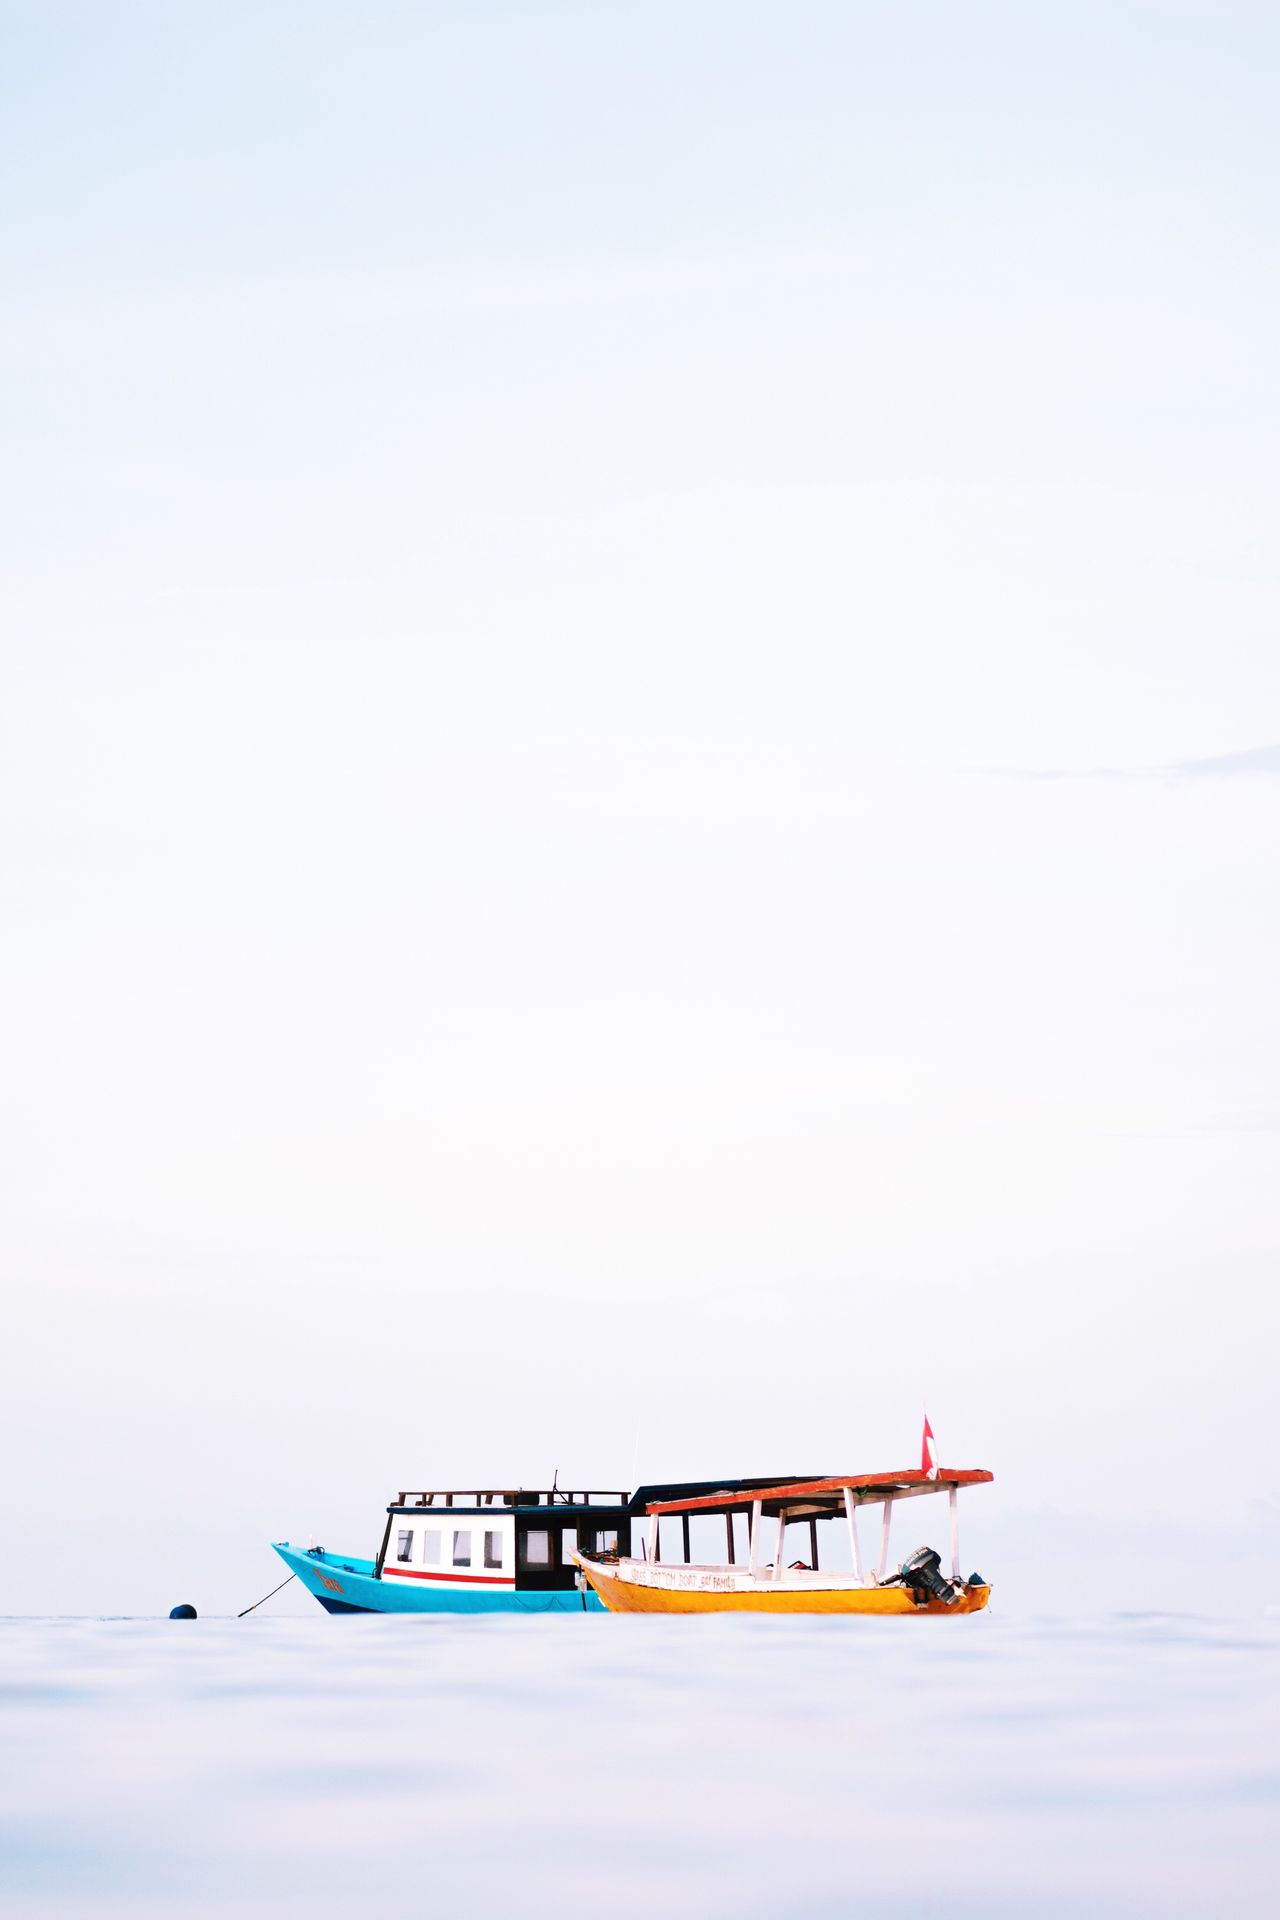 Float Minimalist Minimalism Olympus Pen Gili Trawangan Minimalistic ASIA Landscape Minimalobsession Travel Minimalmood Olympus Minimalist Photography  Olympus Inspired Olympus Pen-f Minimal INDONESIA Olympusinspired Island Water Ocean Sunset Eyeemphoto Boat Sea